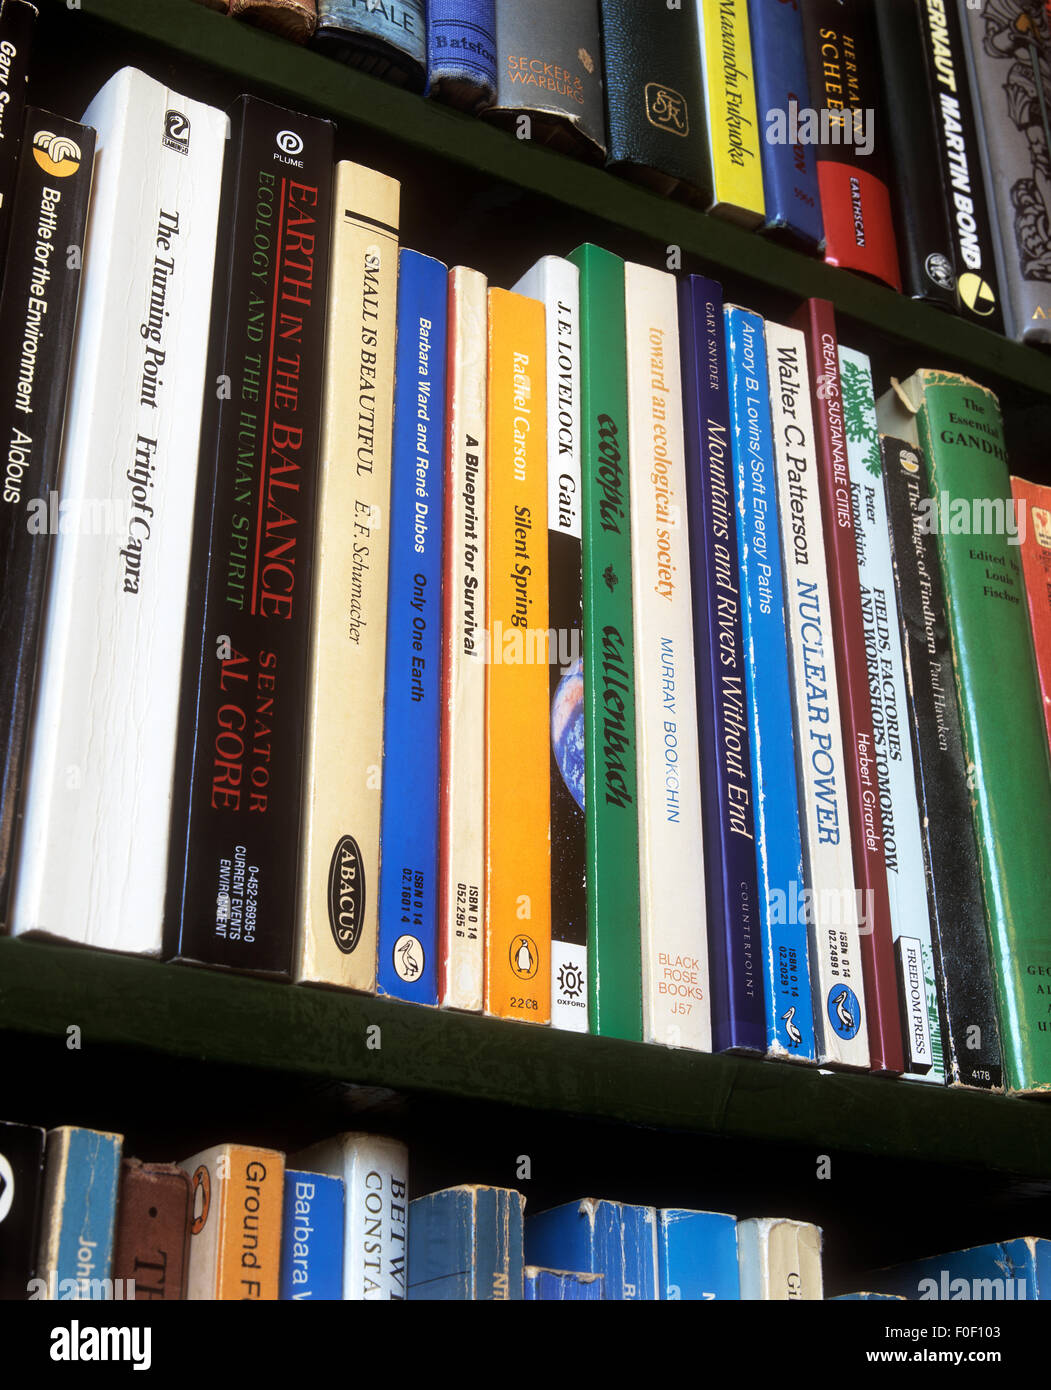 A selection of books, mostly on environmental issues and related subjects. - Stock Image